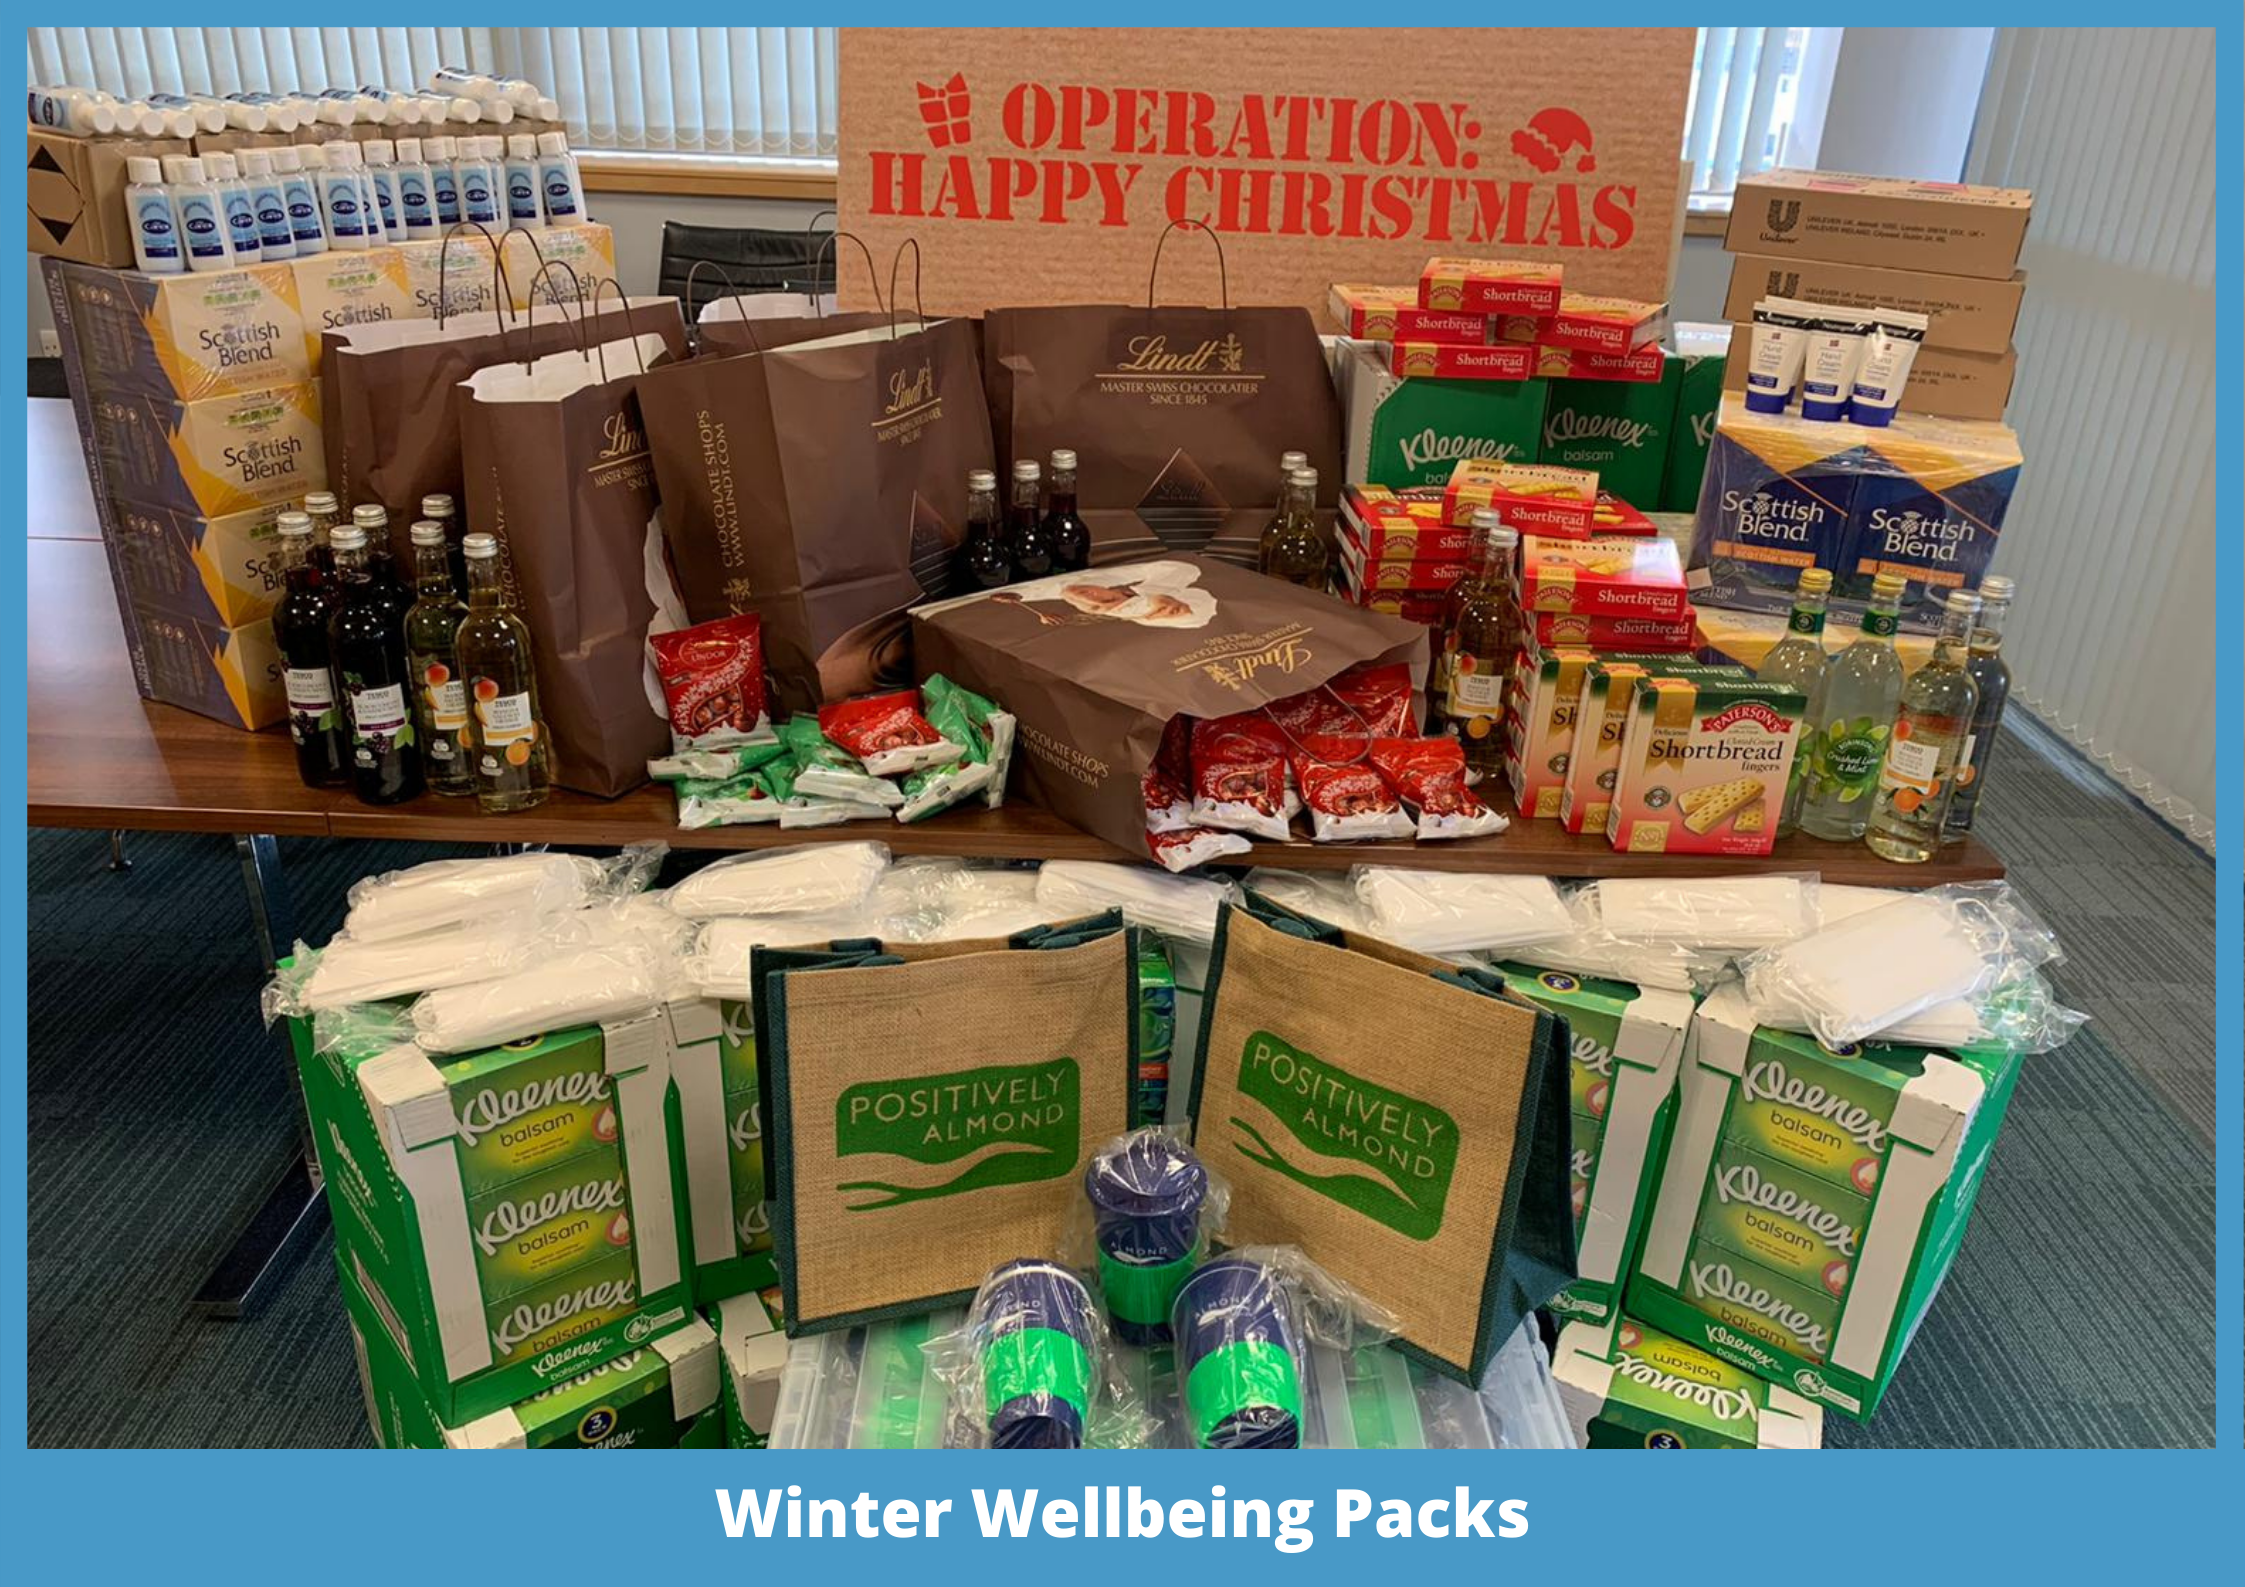 Winter Wellbeing Packs